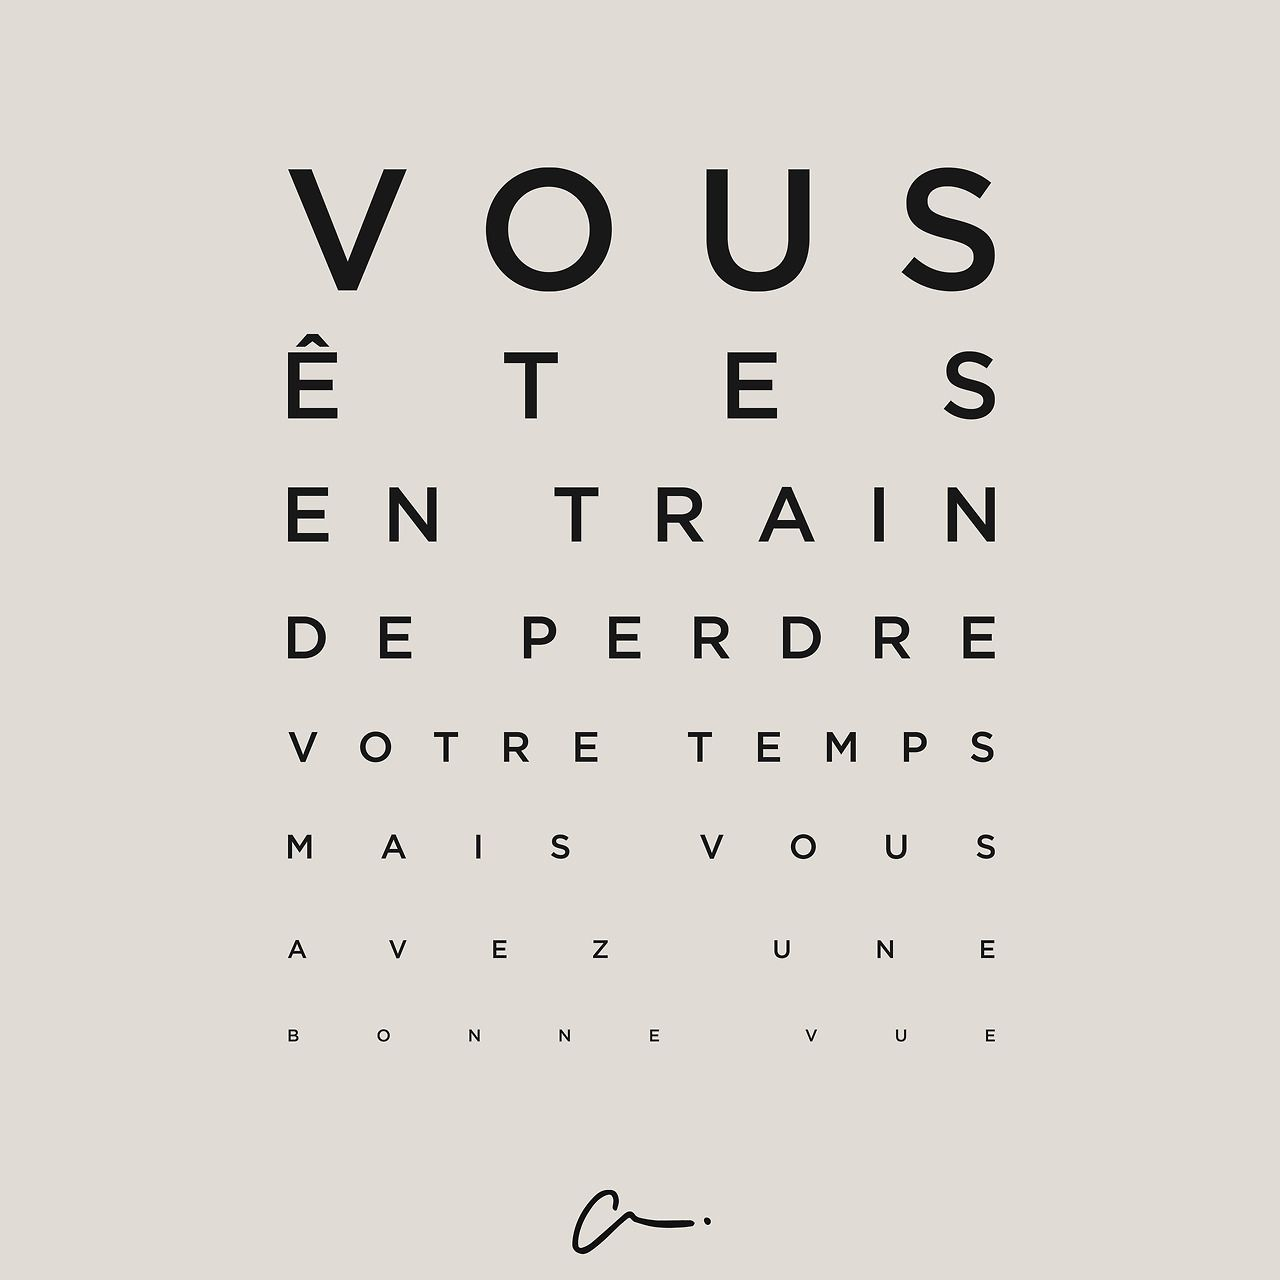 Pin By Stephanie Dennis On Learning French Funny Quotes Cool Words Words Quotes